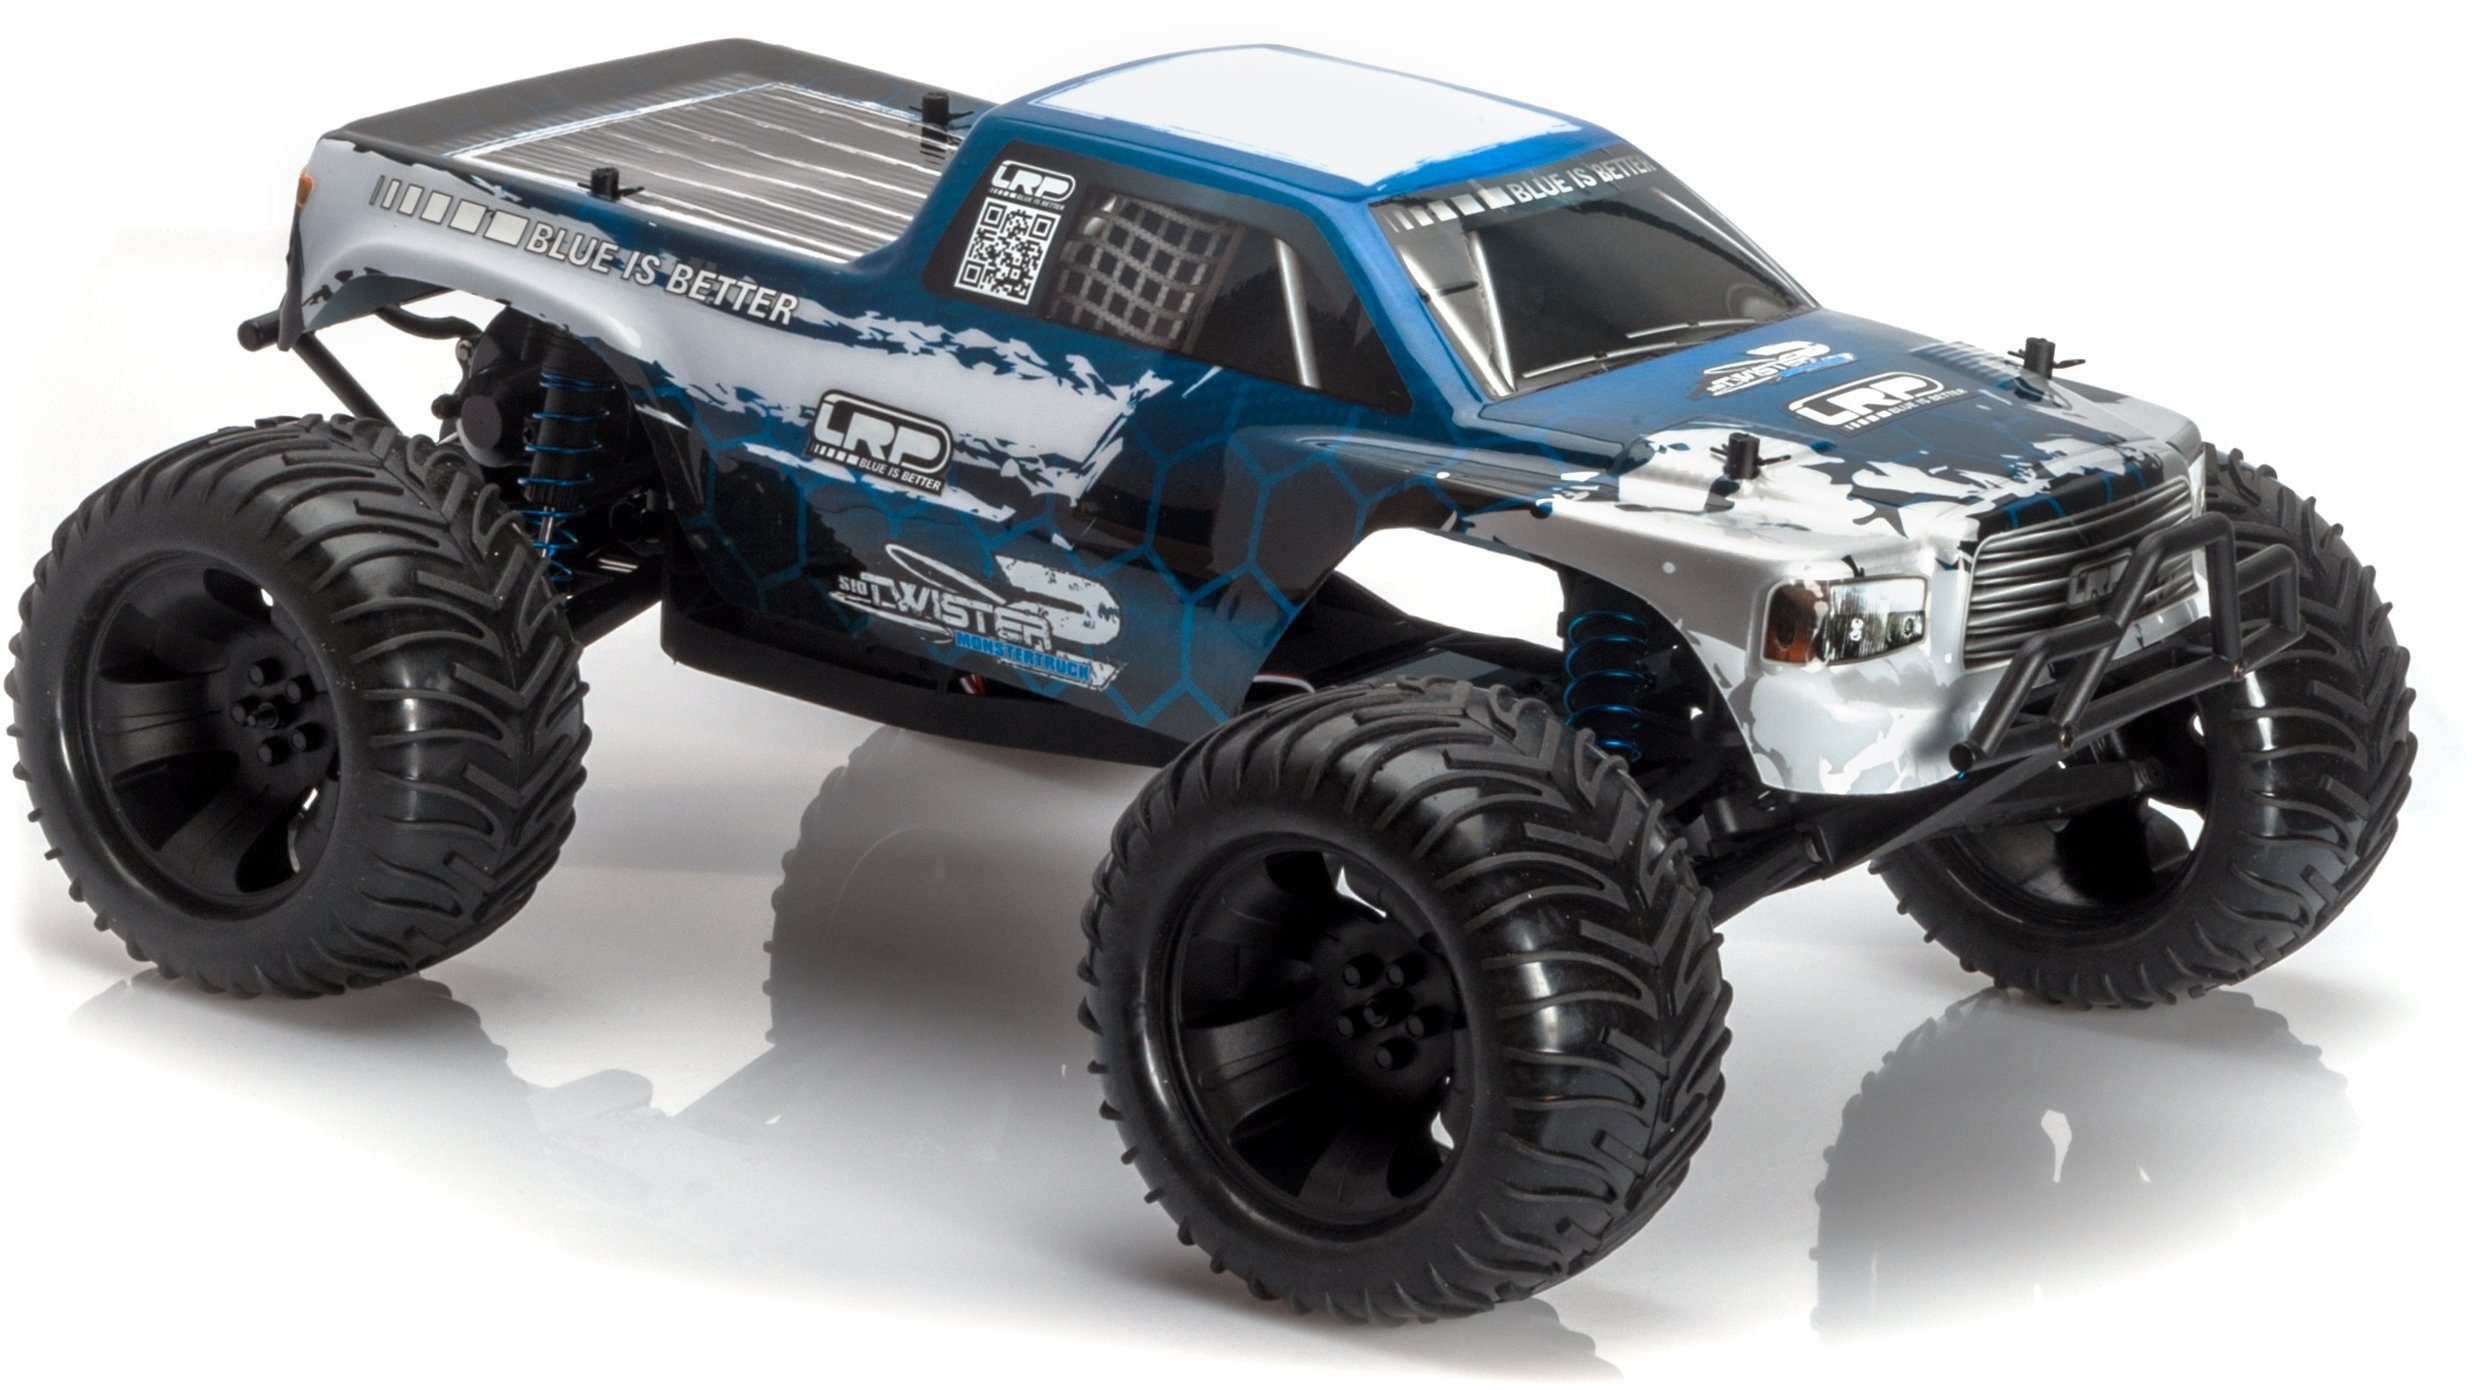 LRP RC Komplettset, »S10 Twister 2 Monster Truck Limited Edition 1:10 2,4 GHz«